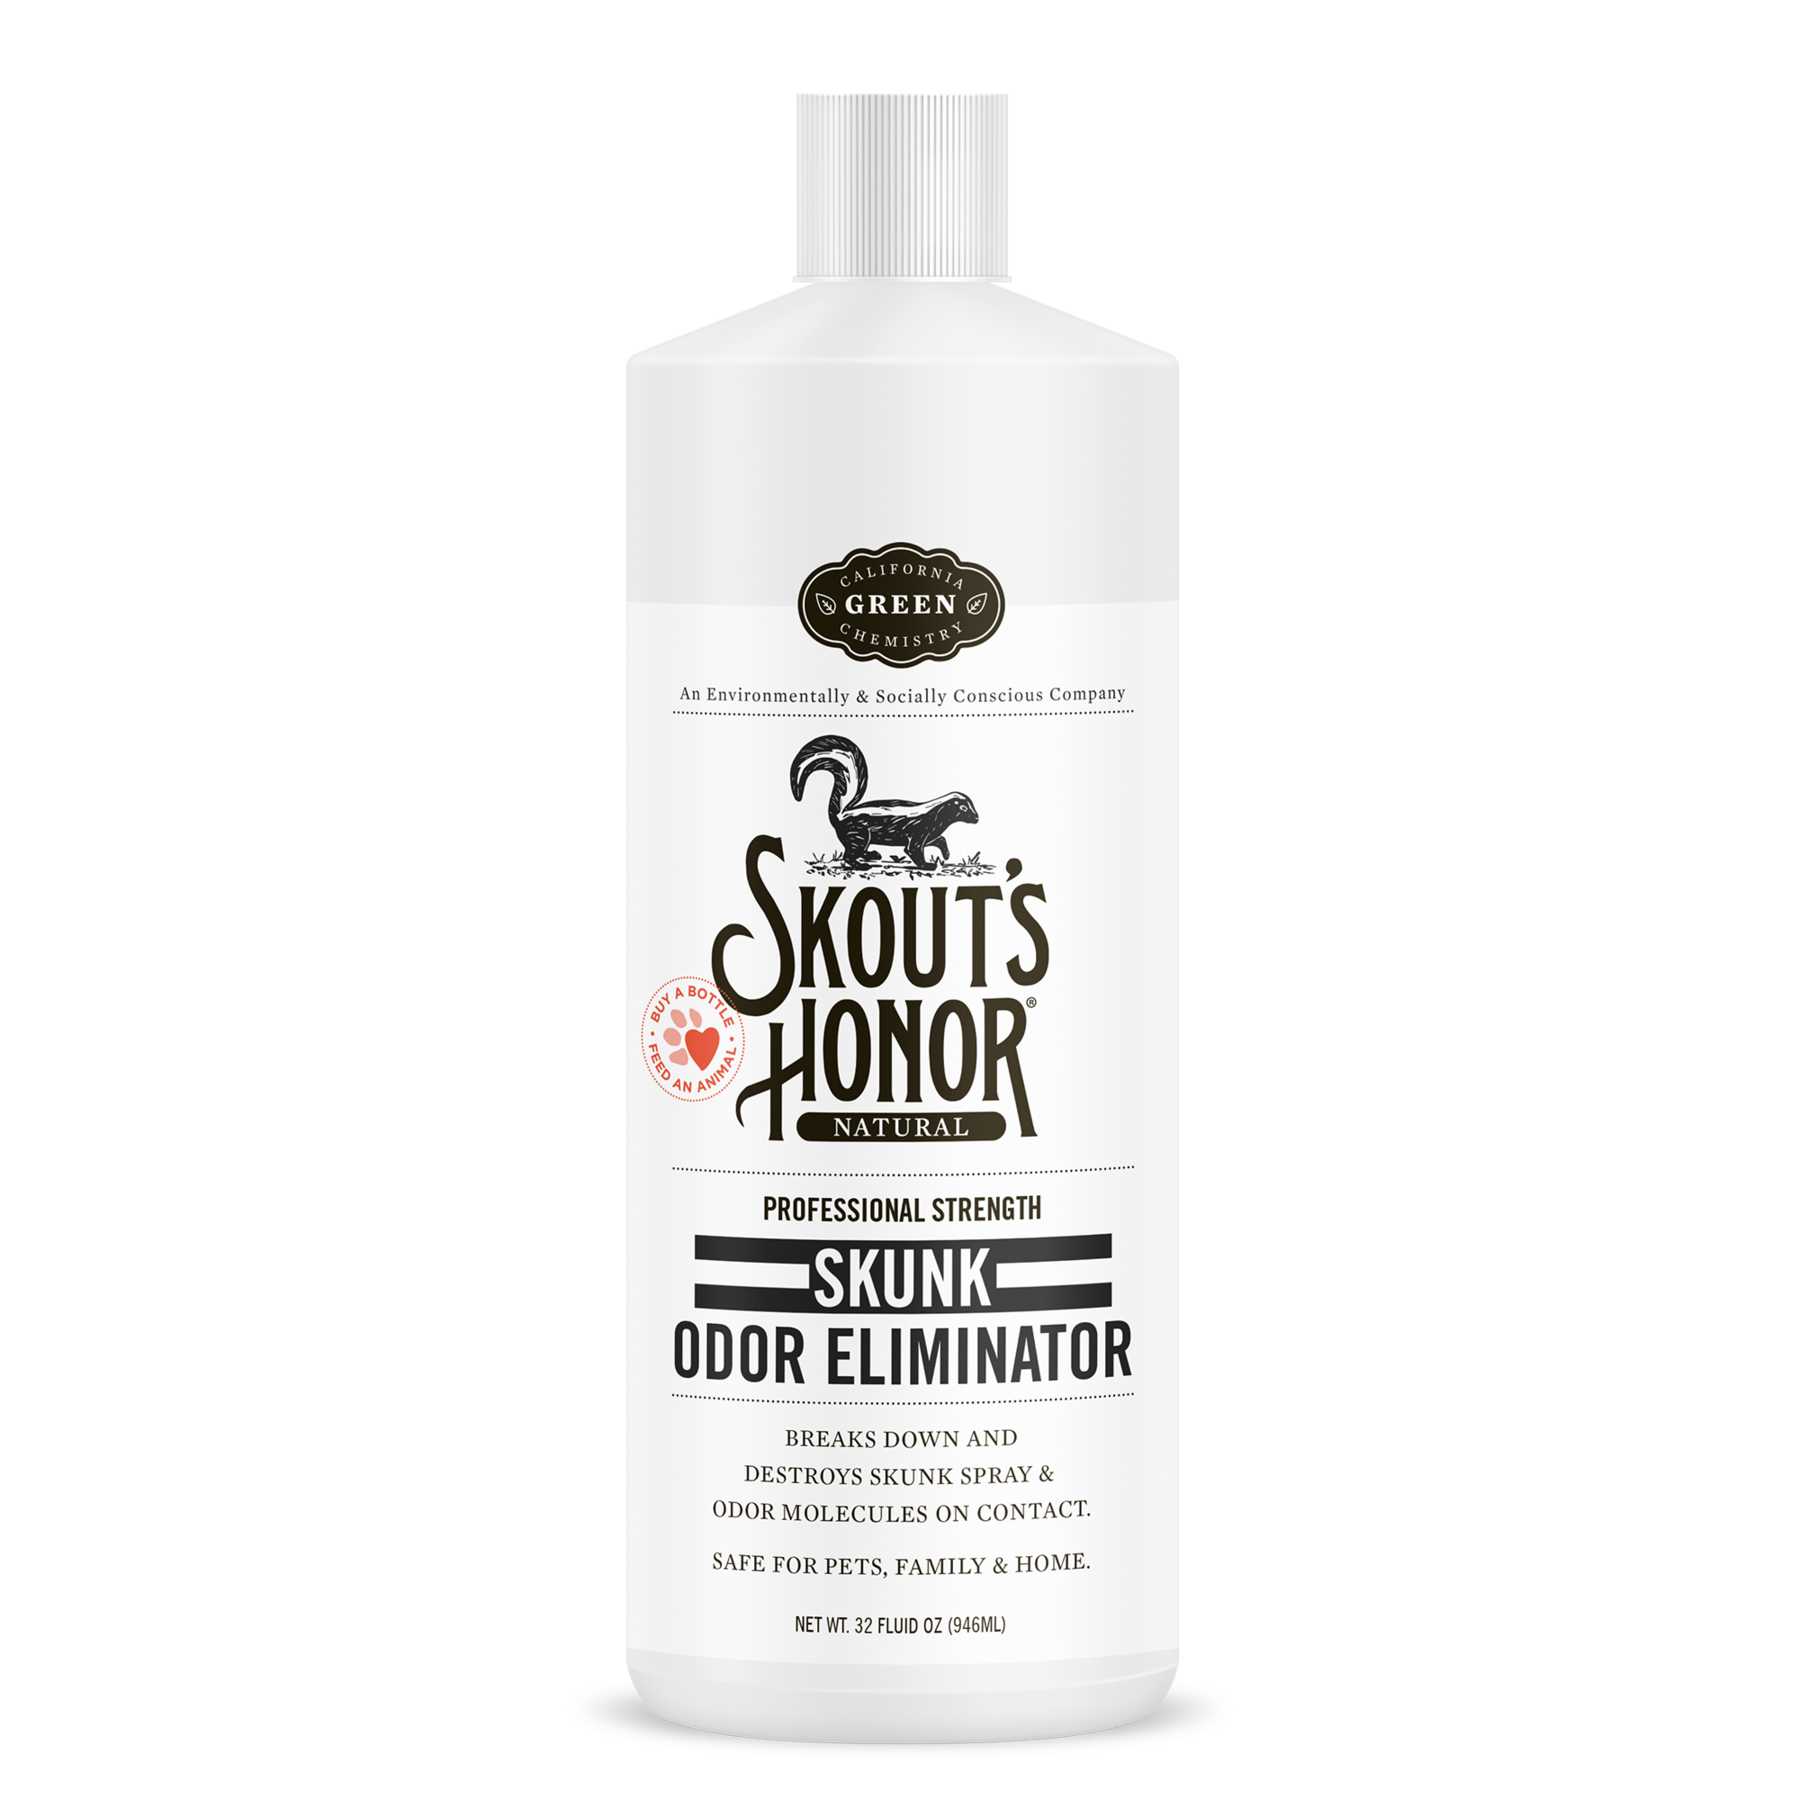 Skout's Honor Skout's Honor Skunk Odor Eliminator Home & Pet Deodorizer 32oz